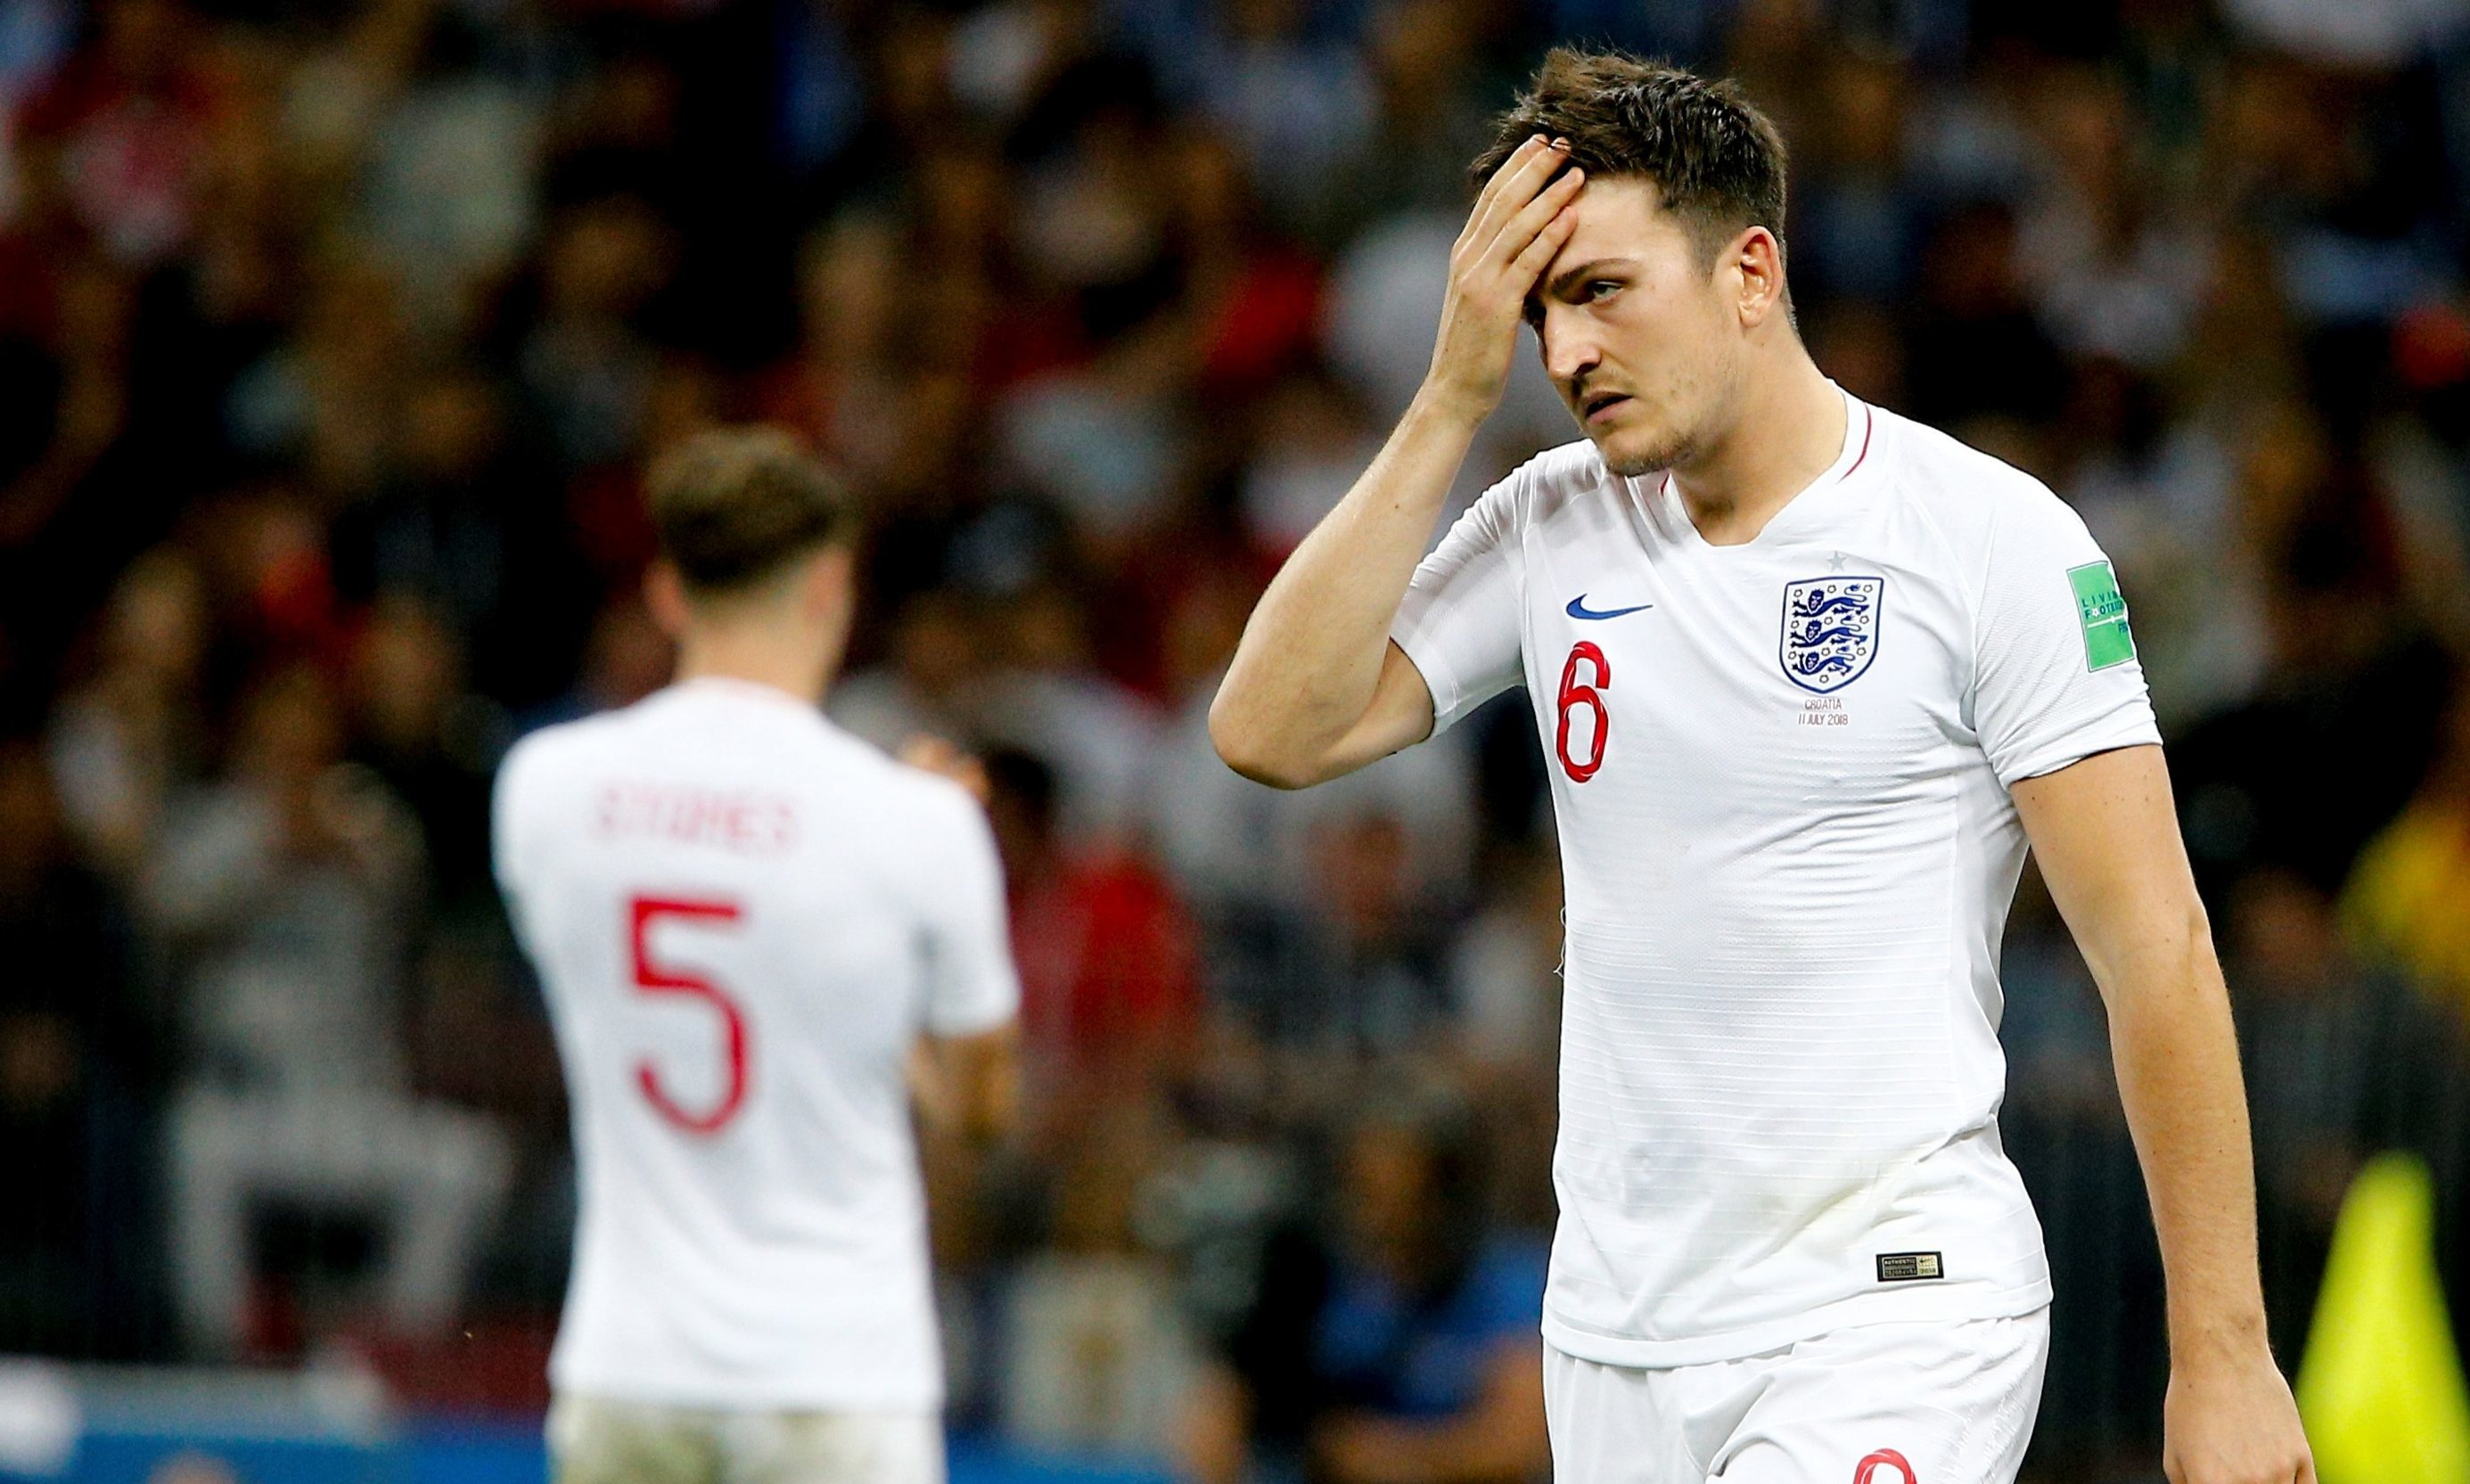 England defenderHarry Maguire (Sefa Karacan/Anadolu Agency/Getty Images)